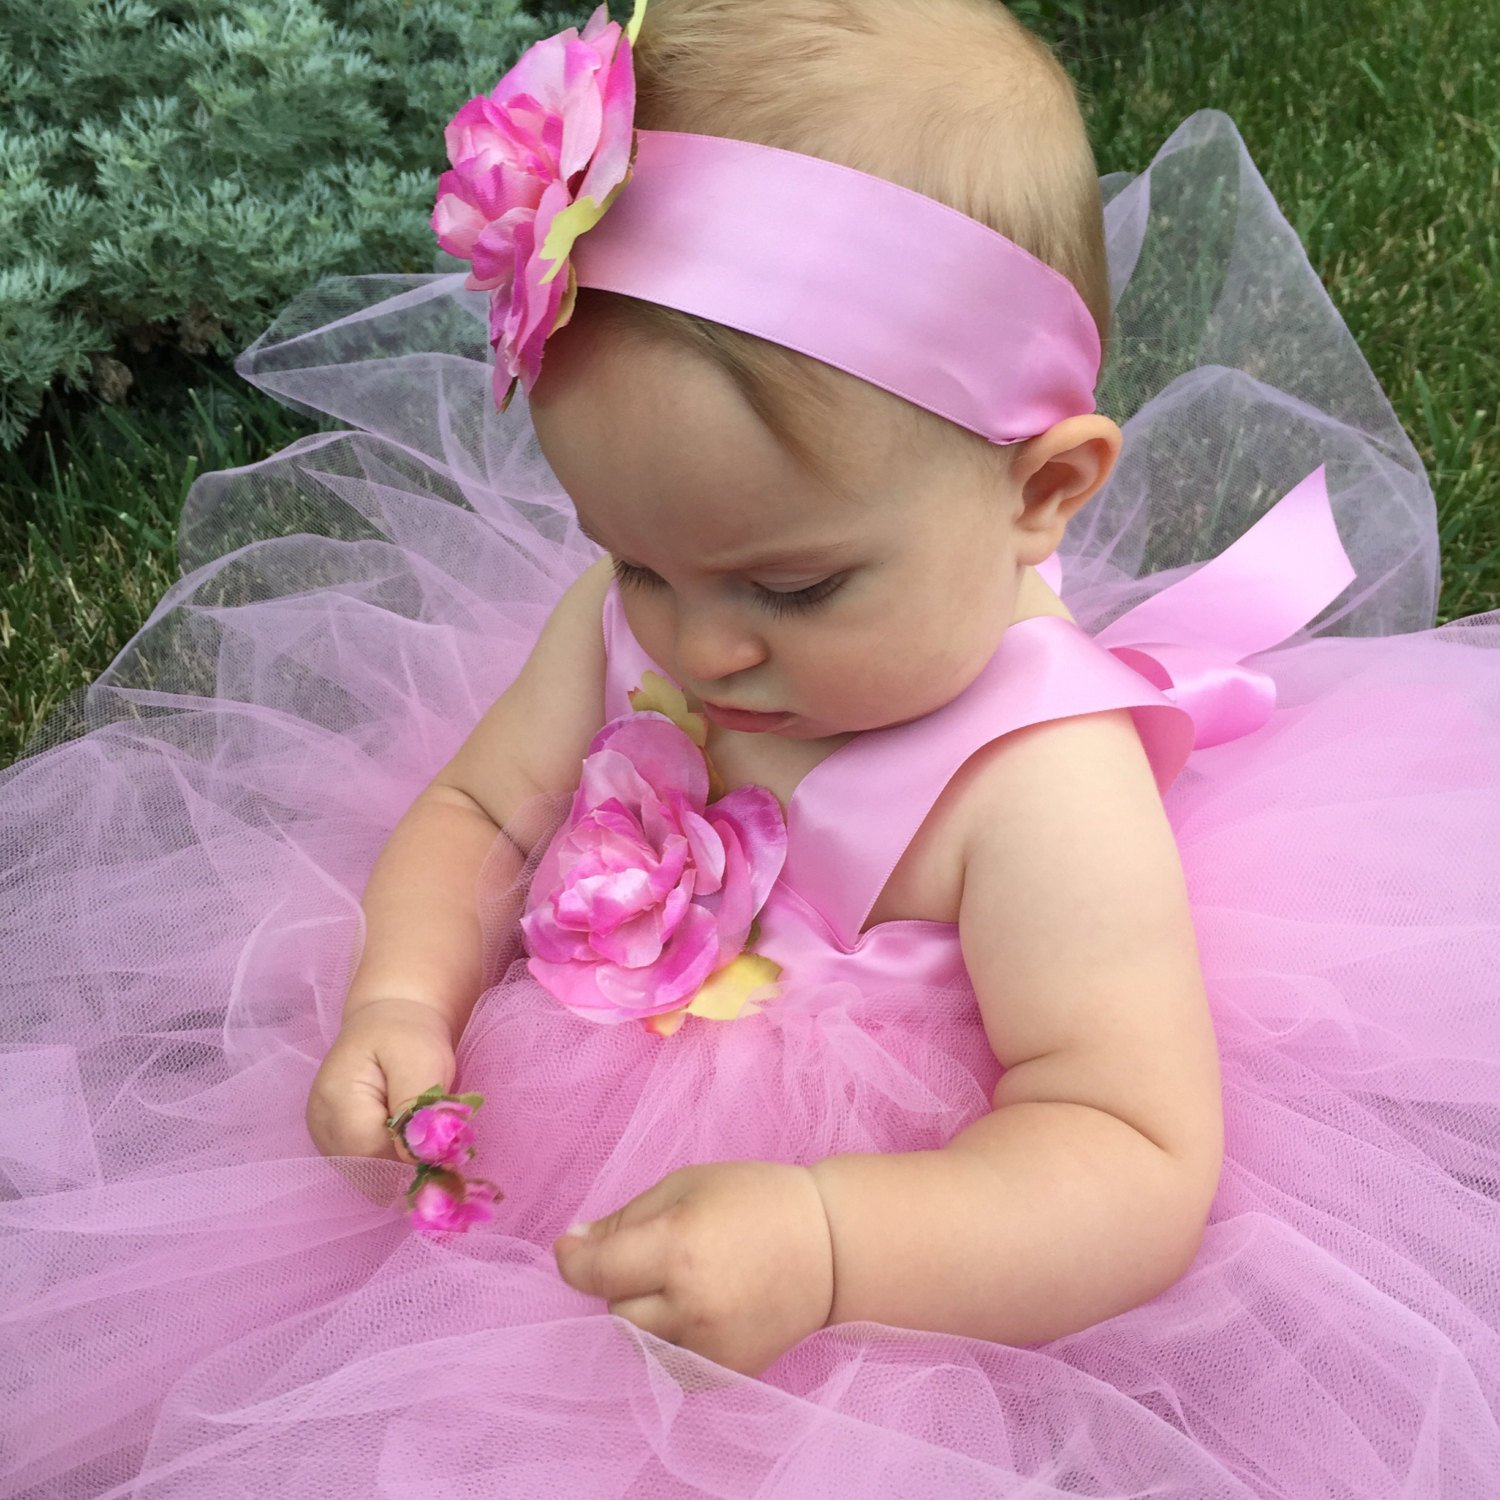 Sugarplum Fairy Tutu Flower Girl Dress First Birthday Baby Baptism Pink Tulle Flowergirl Gown 1st Bday Outfit Photo Booth Prop Clothing Set